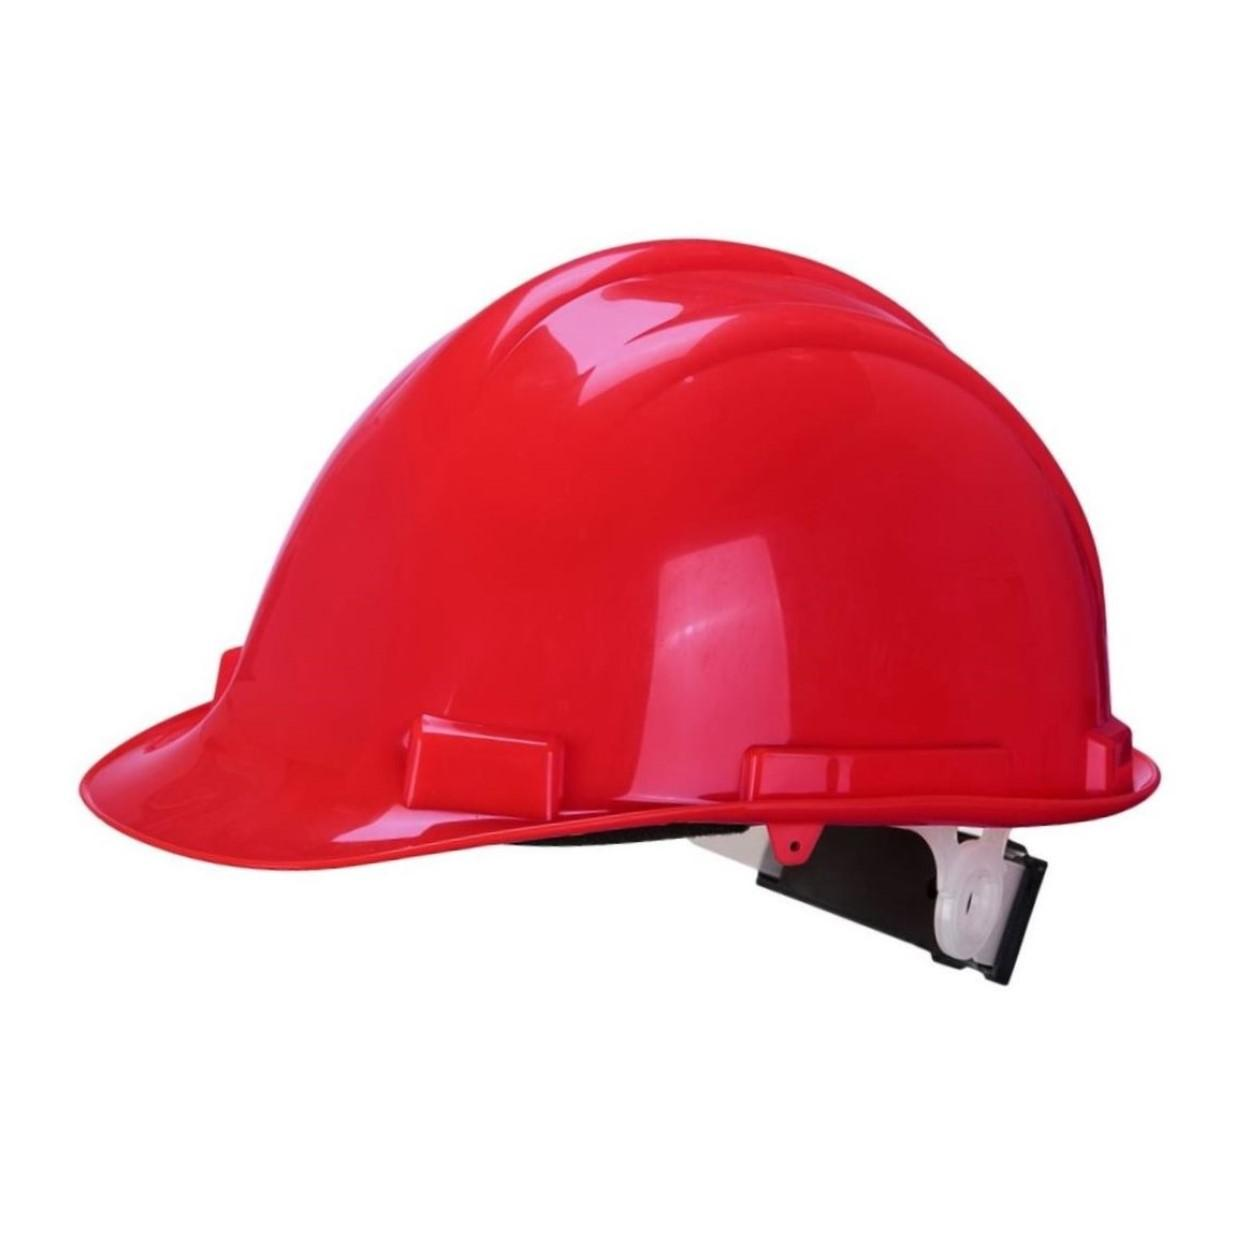 Casque de securite expertbase portwest ps57 2006